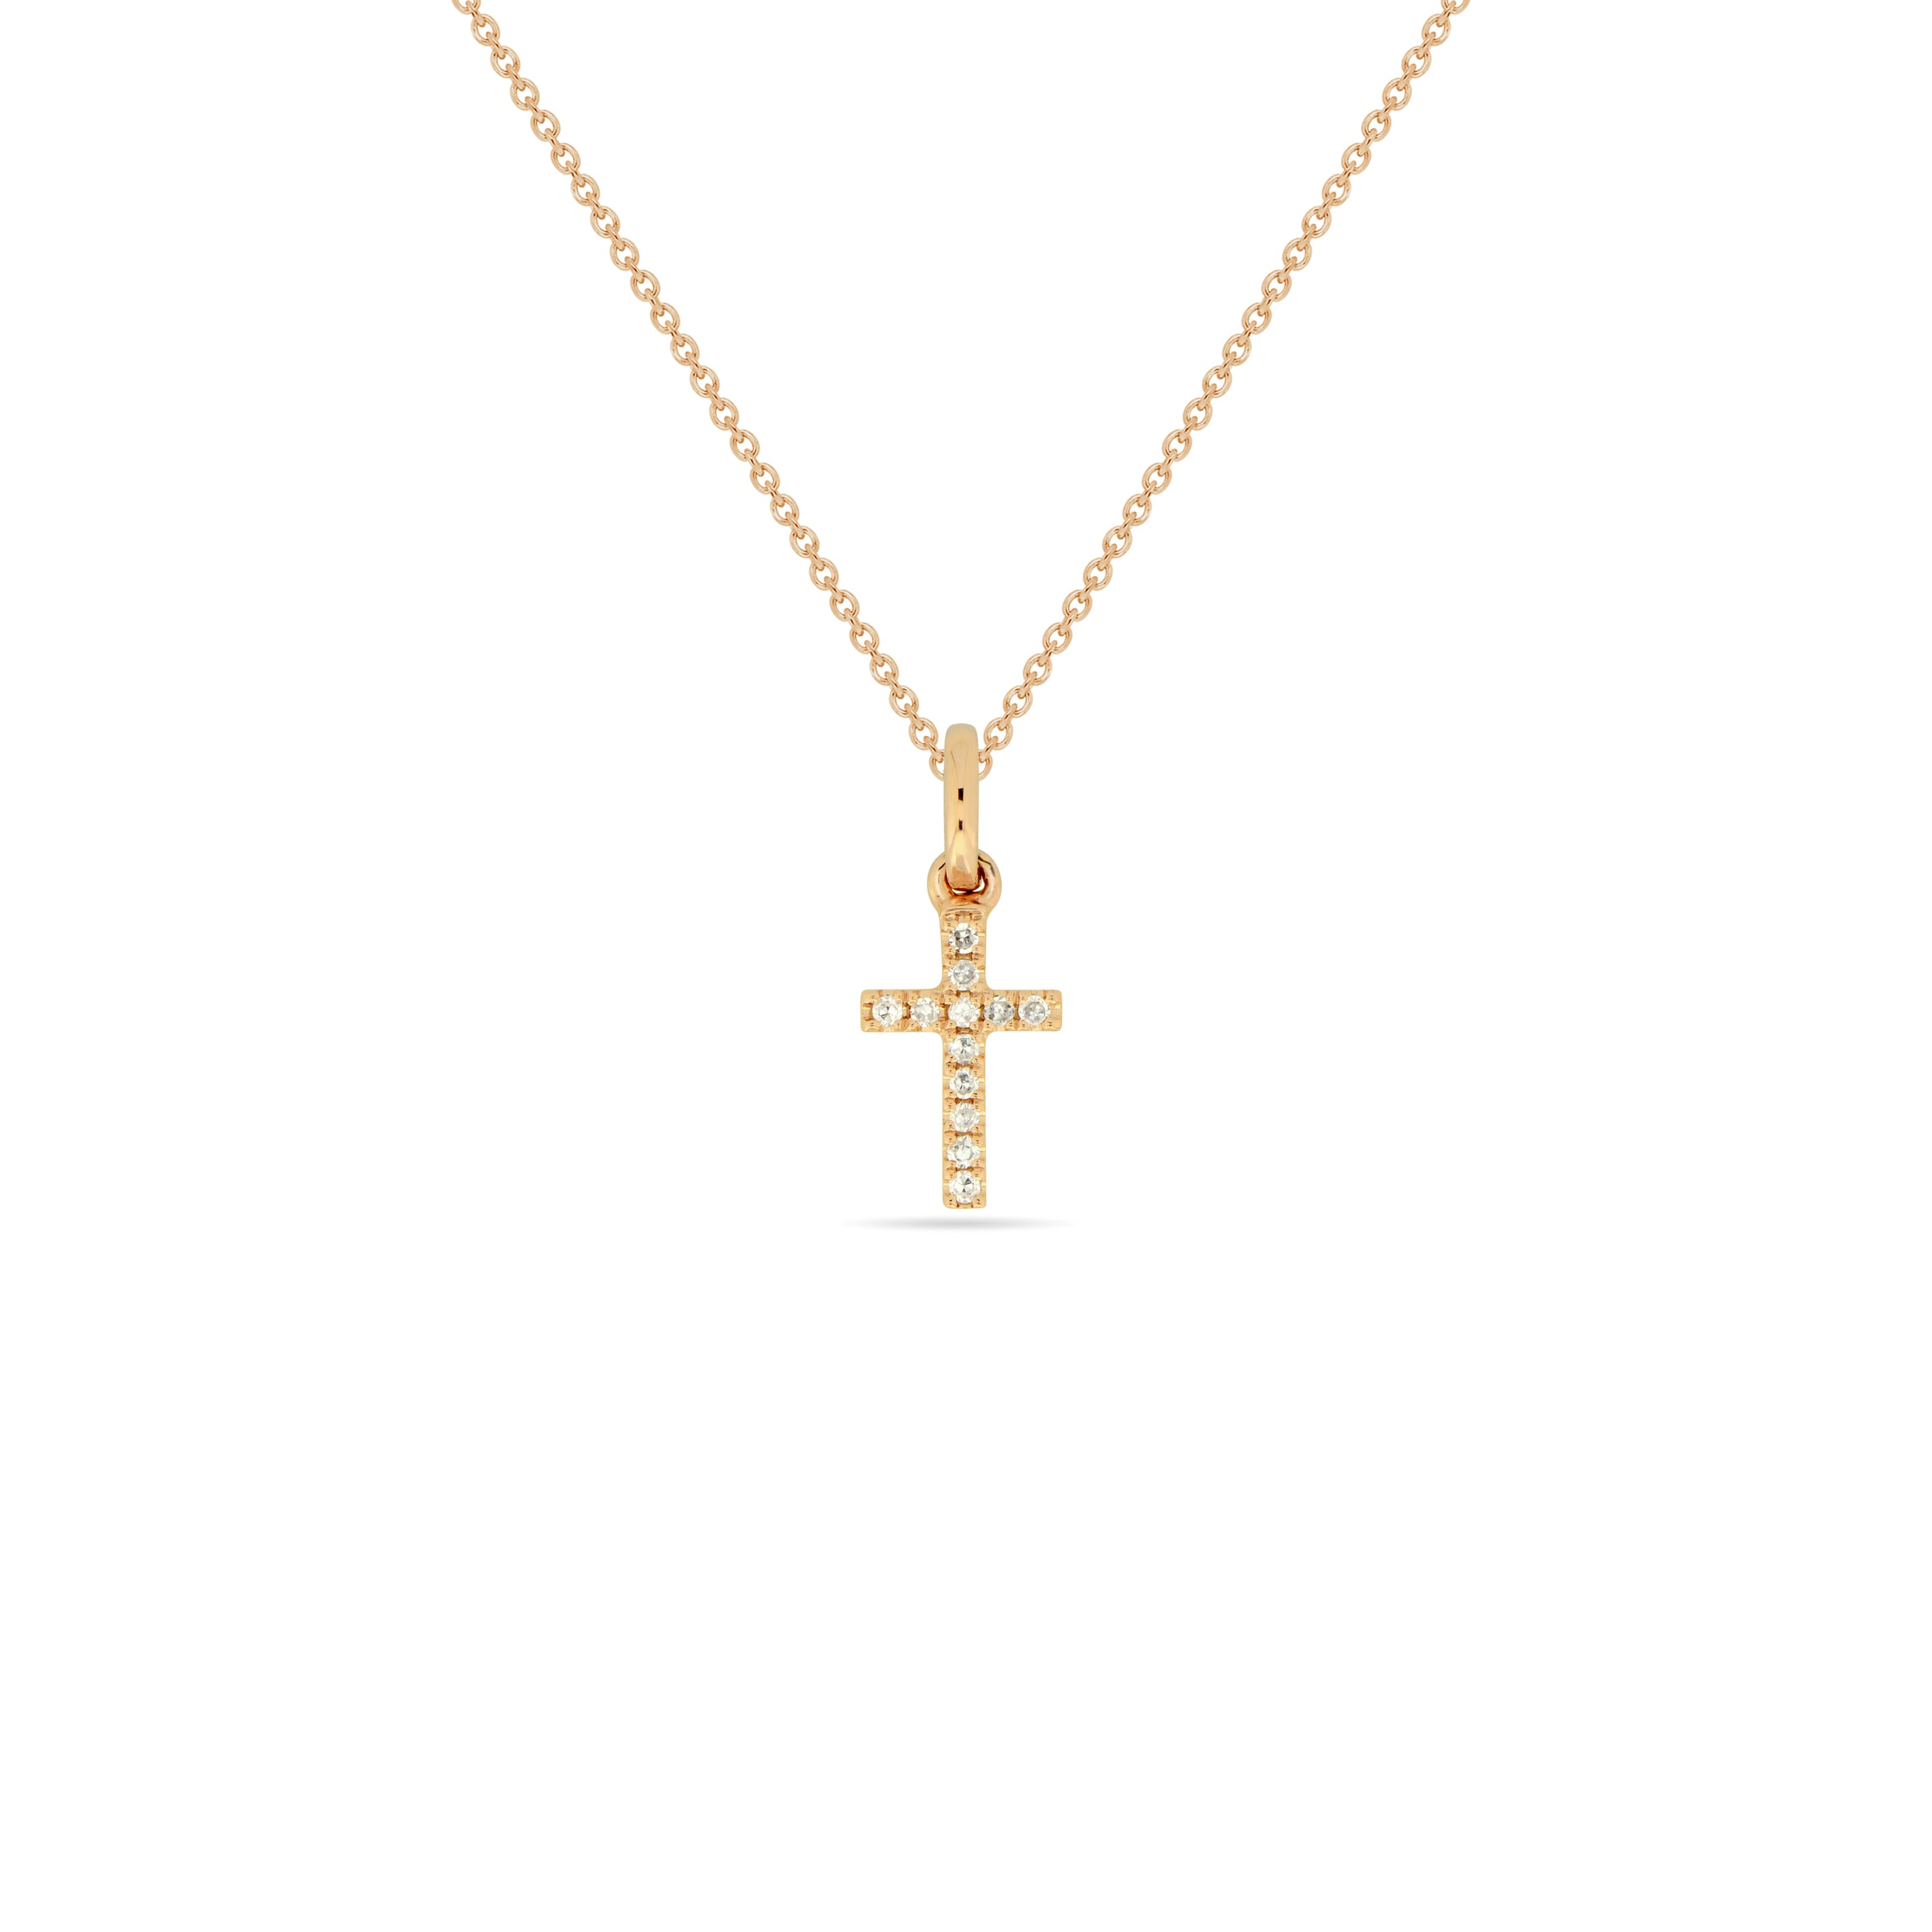 SMALL Cross Necklace , Necklaces - Fine Jewelry, RoCHIC, RoCHIC Fine Jewelry